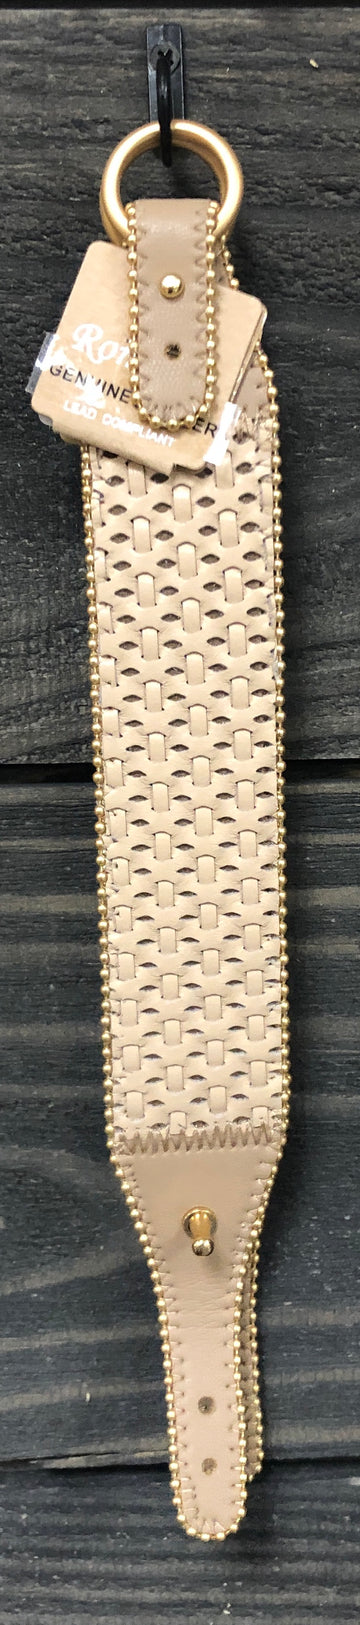 Natural Leather Woven Bracelet with Buckle Clasp